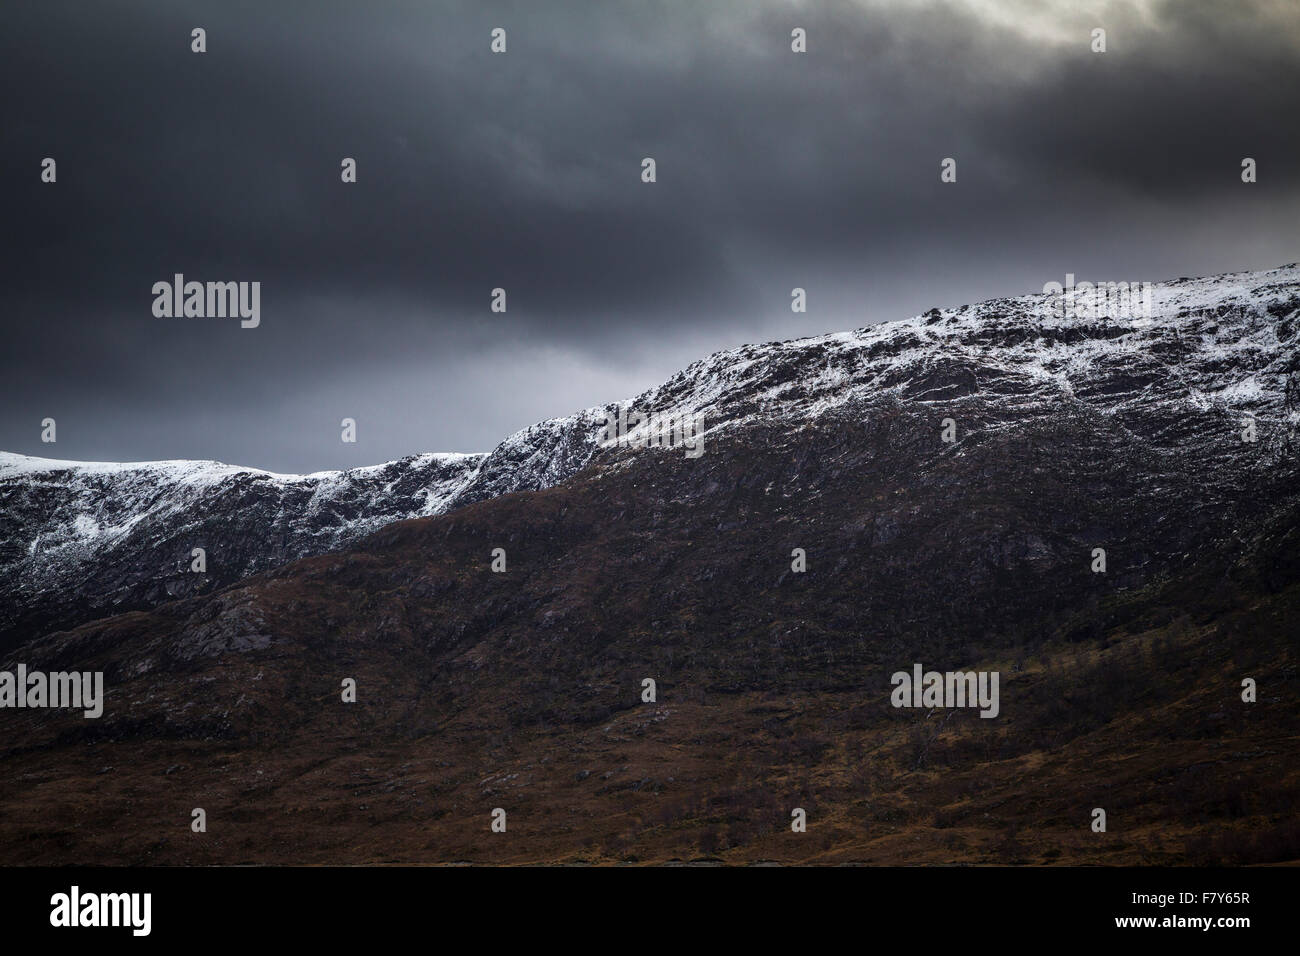 Storm clouds over the Scottish Highlands with a light dusting of snow, Kintail, Scotland - Stock Image